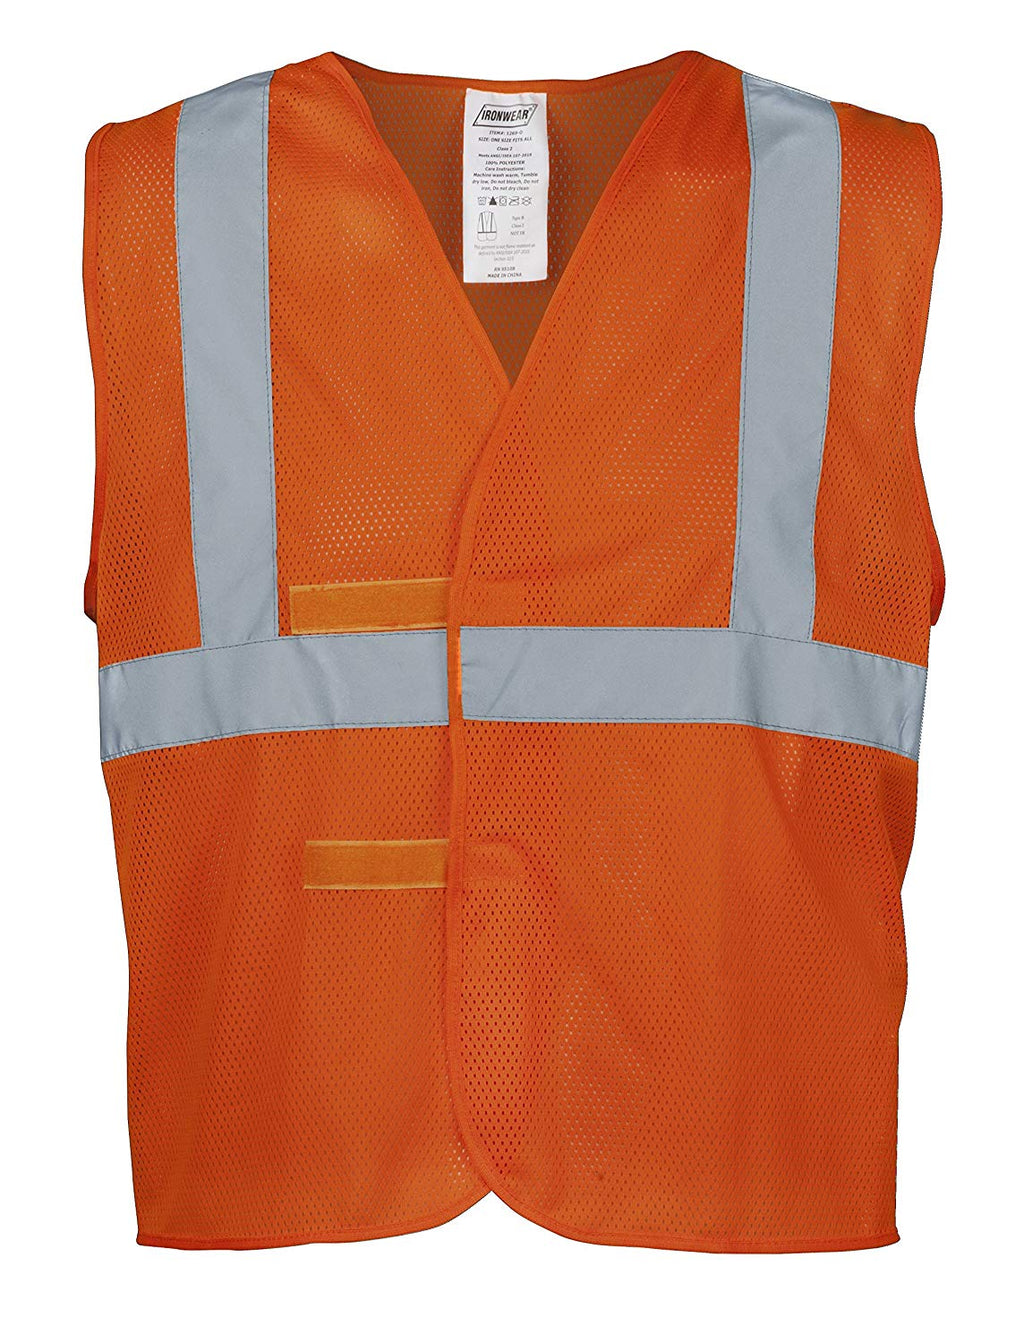 "1269-O ANSI Orange Class 2 Poly Mesh SAFETY Vest with 2"" Silver Reflective Tape"